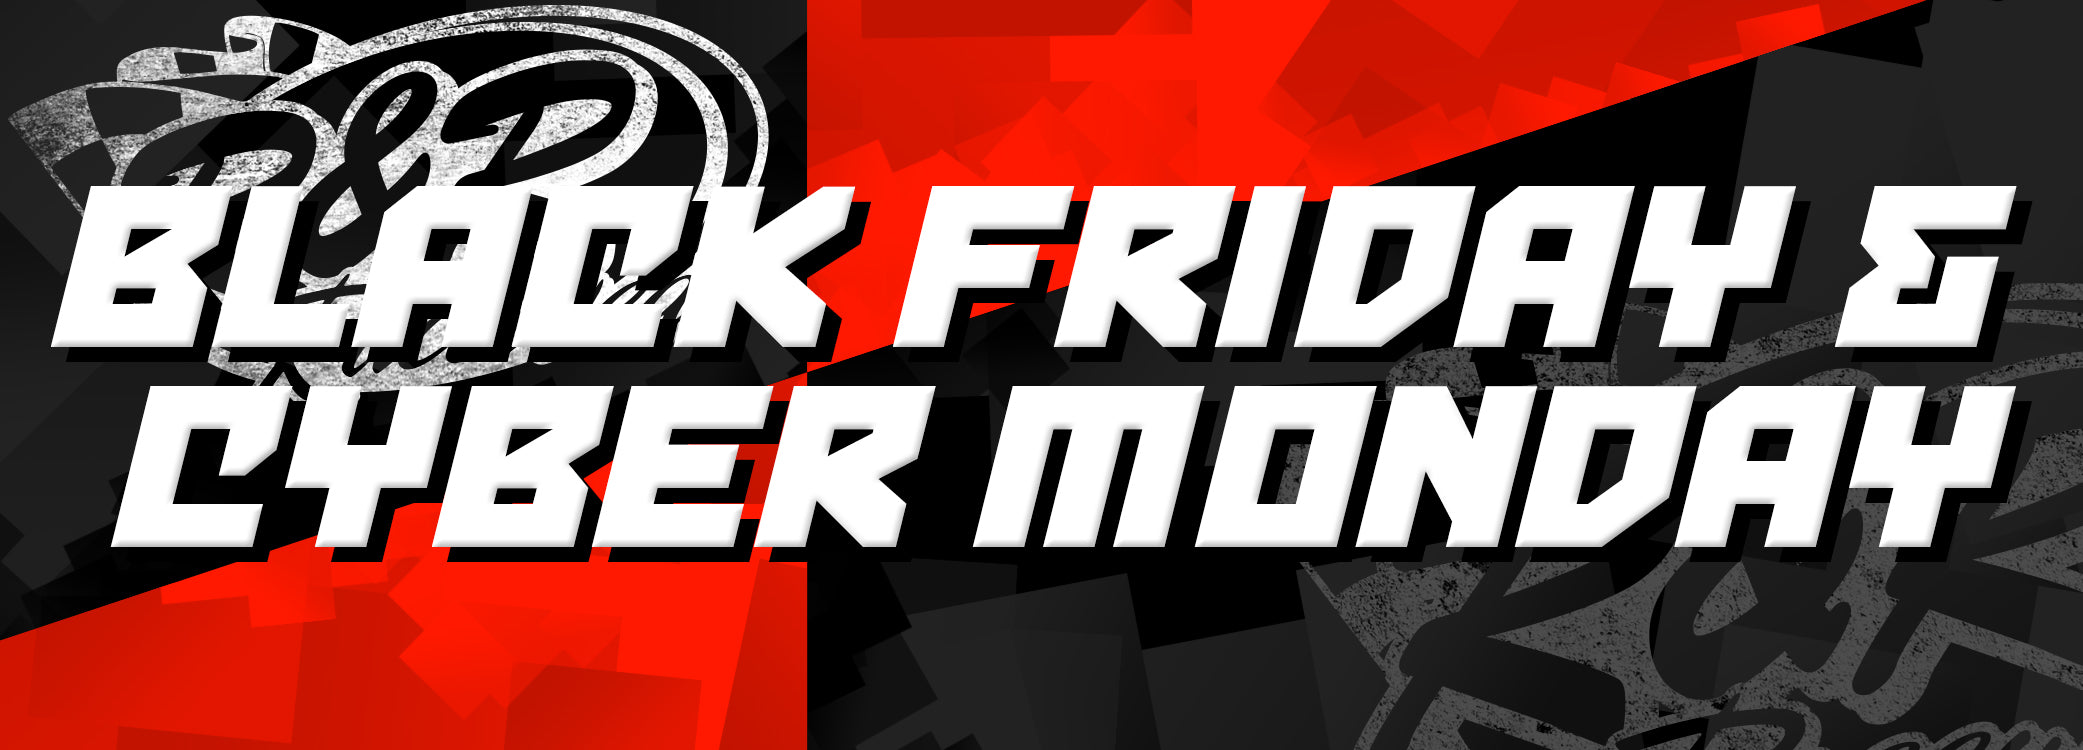 R&R Black Friday and Cyber Monday